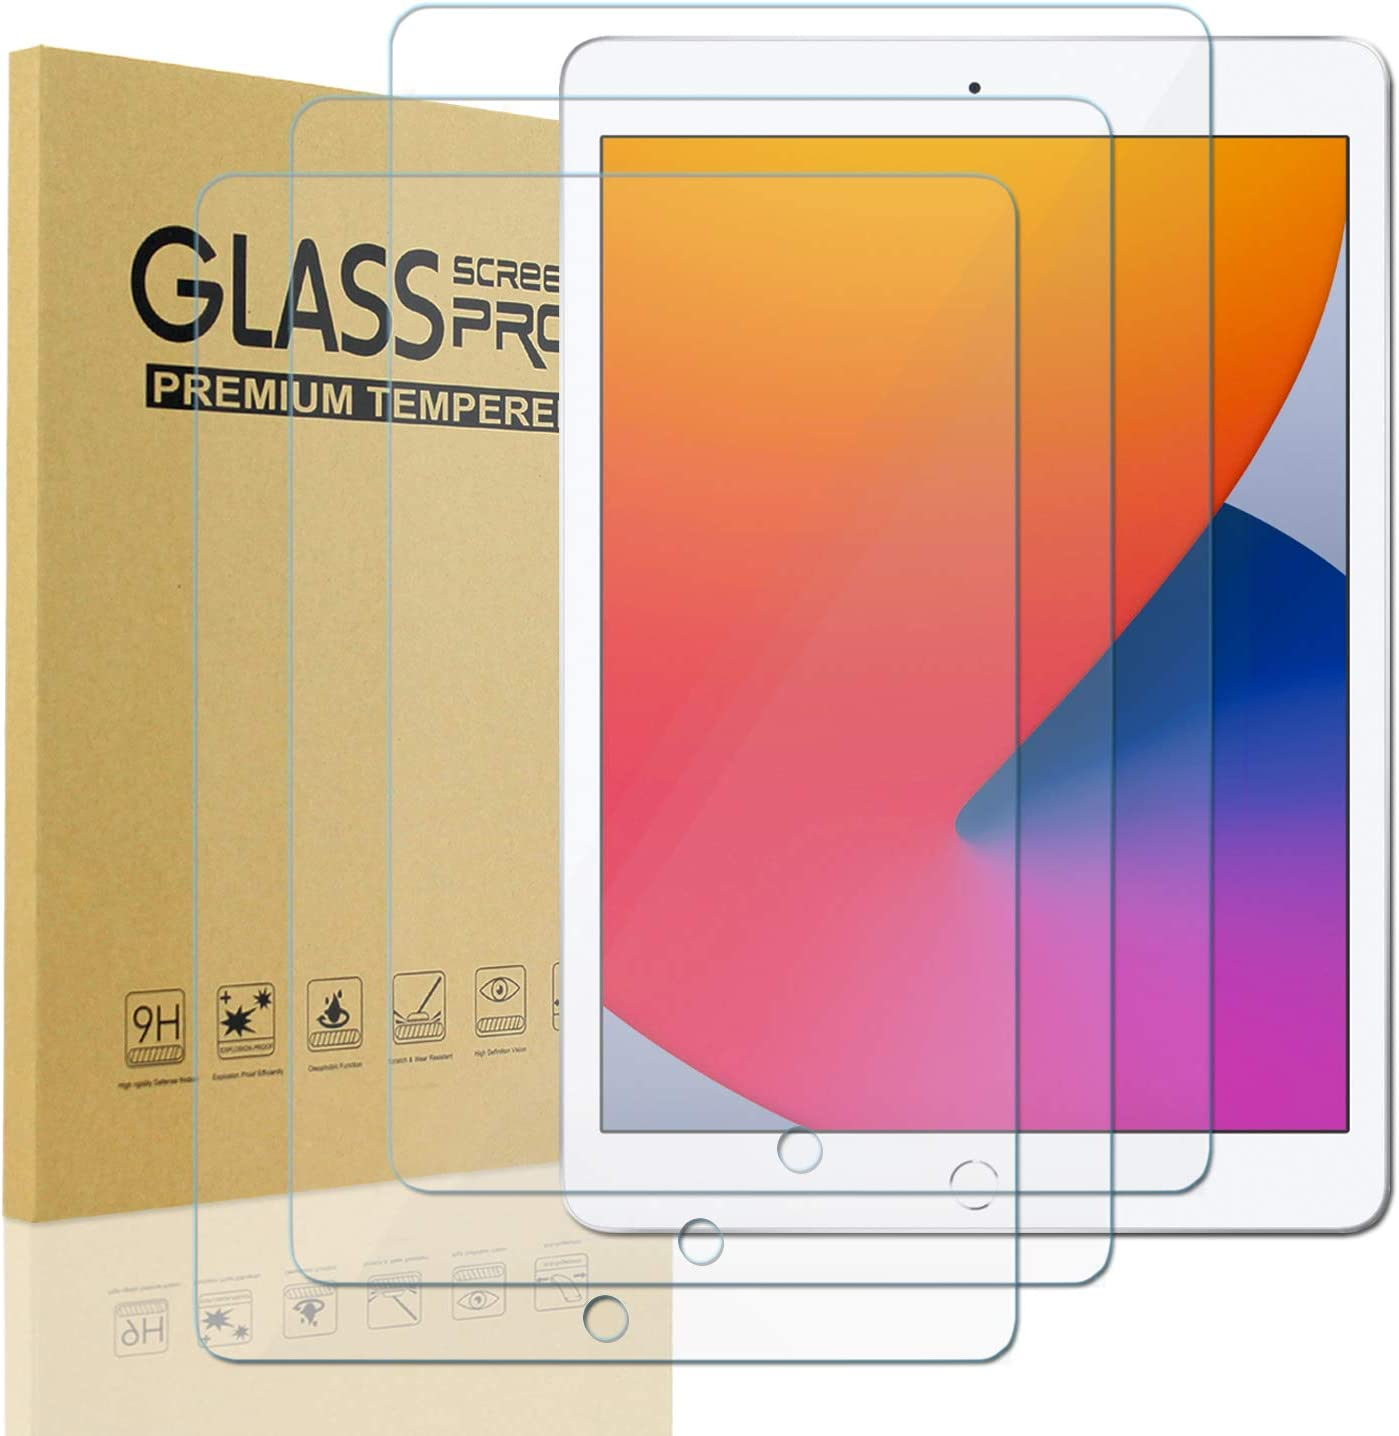 [3 Pack] KIQ Tempered Glass Screen Protector 9H Hardness 0.30mm, Scratch-Resist, Ultra-Clear, Anti-Scratch, Self-Adhere, Easy to Install, for Apple iPad Air 1st 2nd Pro 9.7 2016 5th 6th 2017 2018